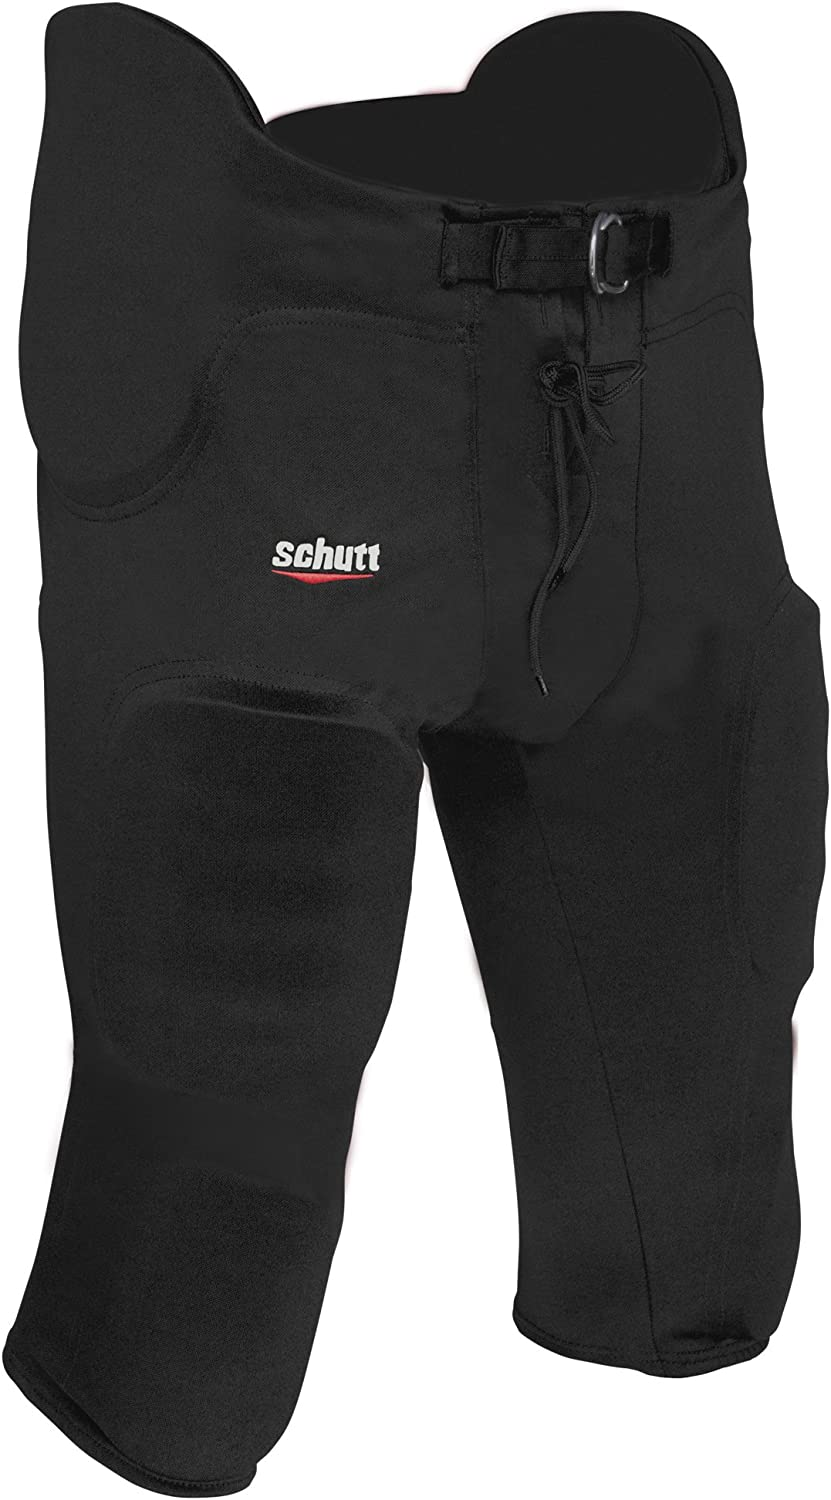 Schutt Sports Youth All-in-One Poly Knit Football Pant : Sports & Outdoors